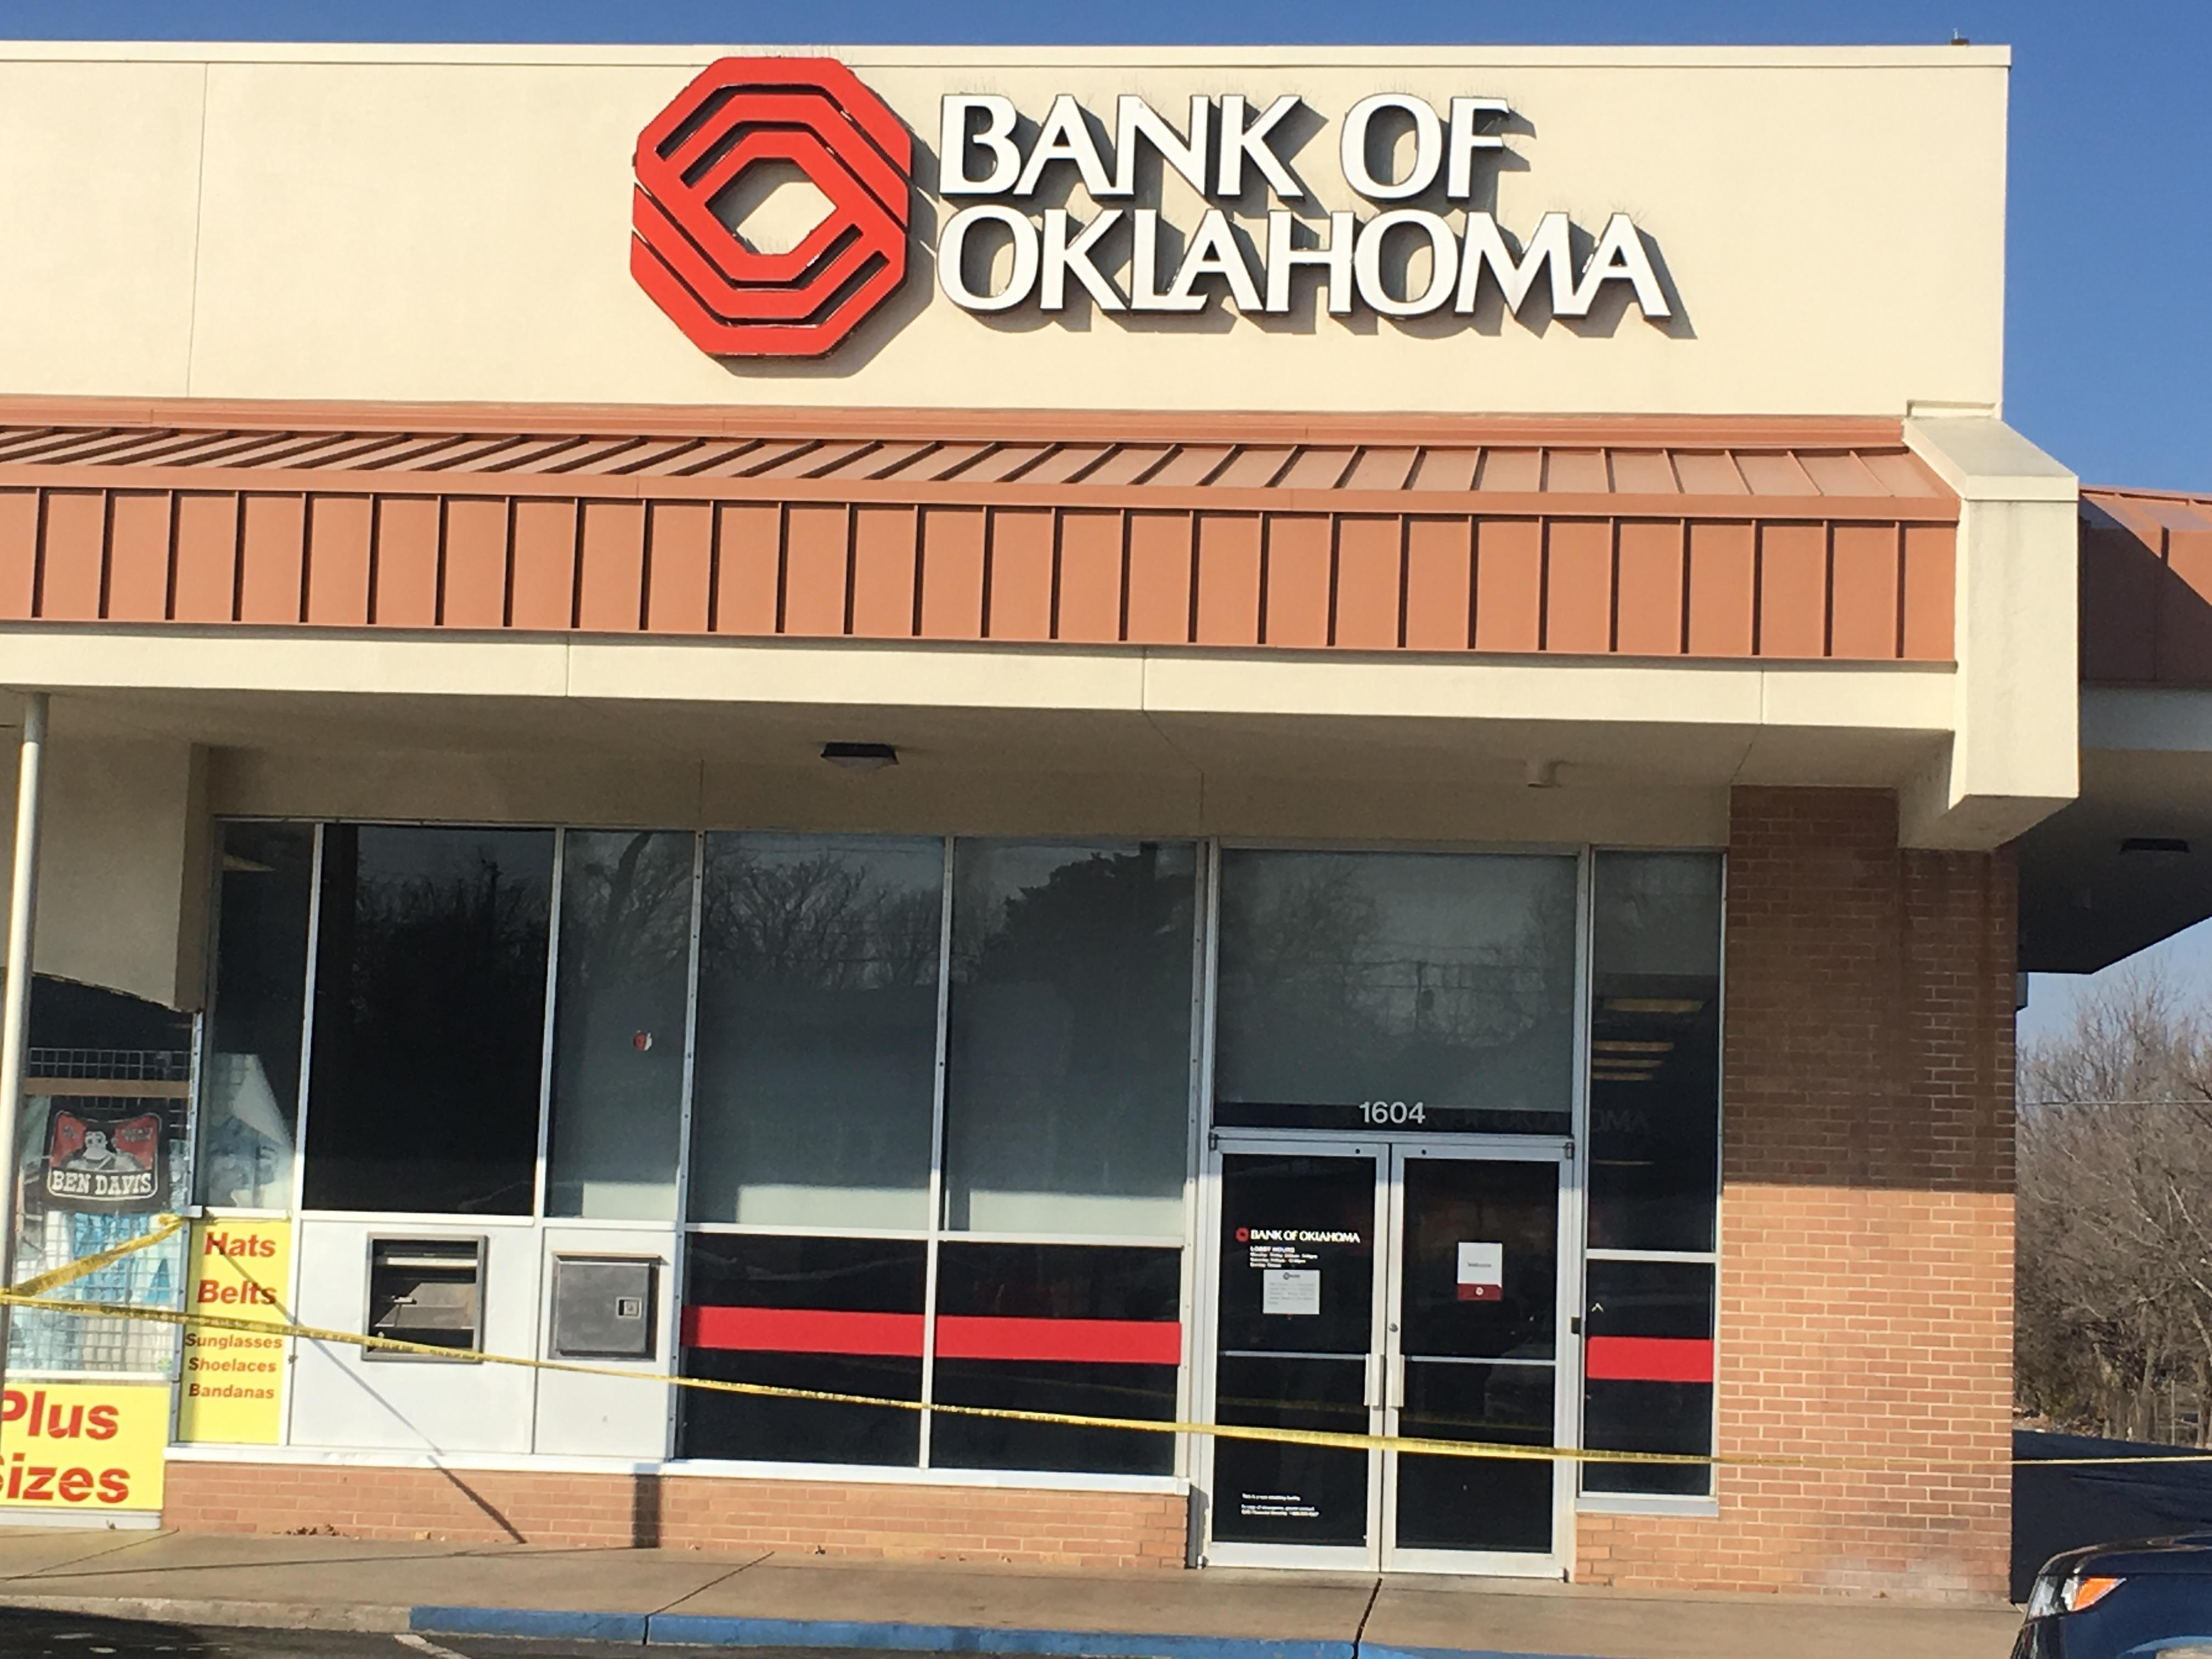 Officers responded around 9:30 a.m. to the Bank of Oklahoma near Pine and Lewis for an armed robbery call. (KTUL)